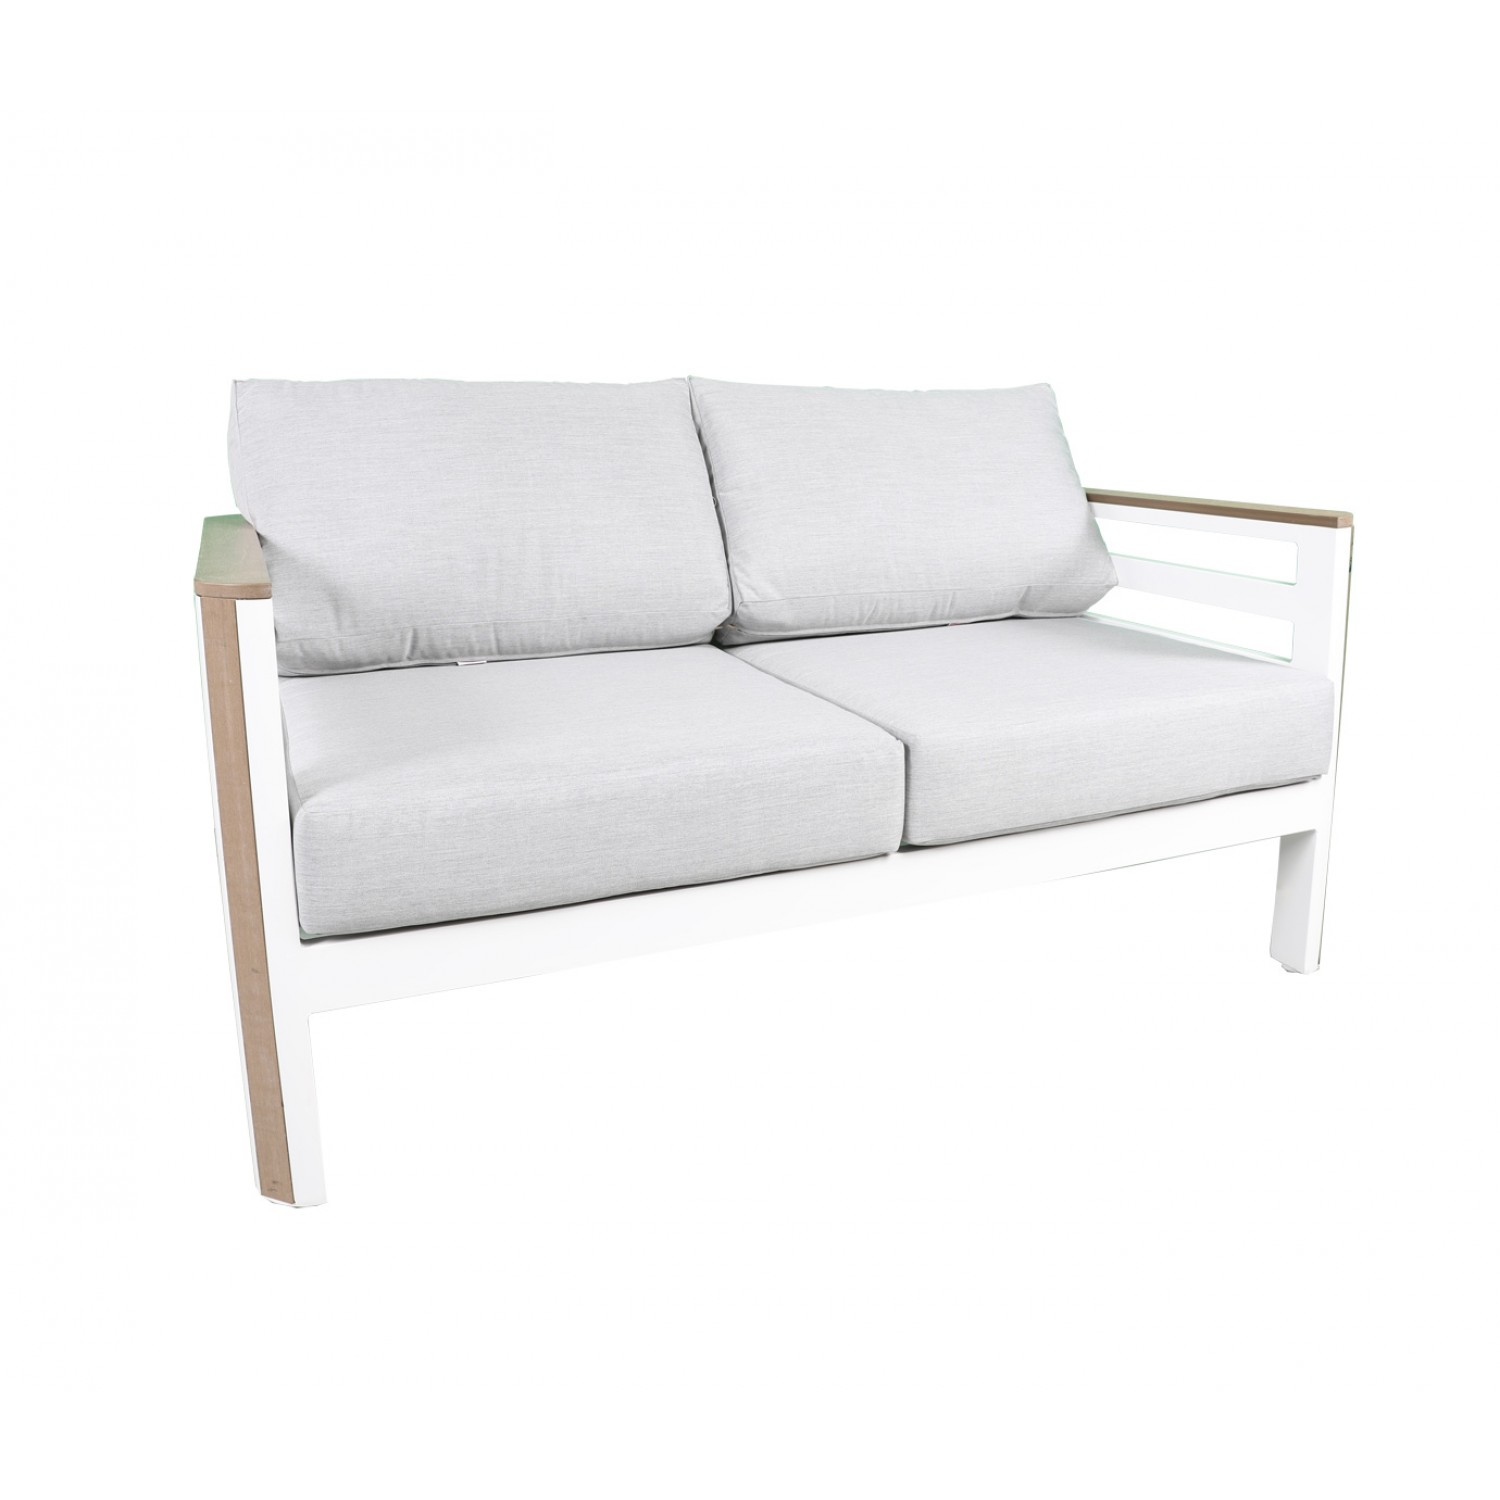 Deco Outdoor Loveseat Set